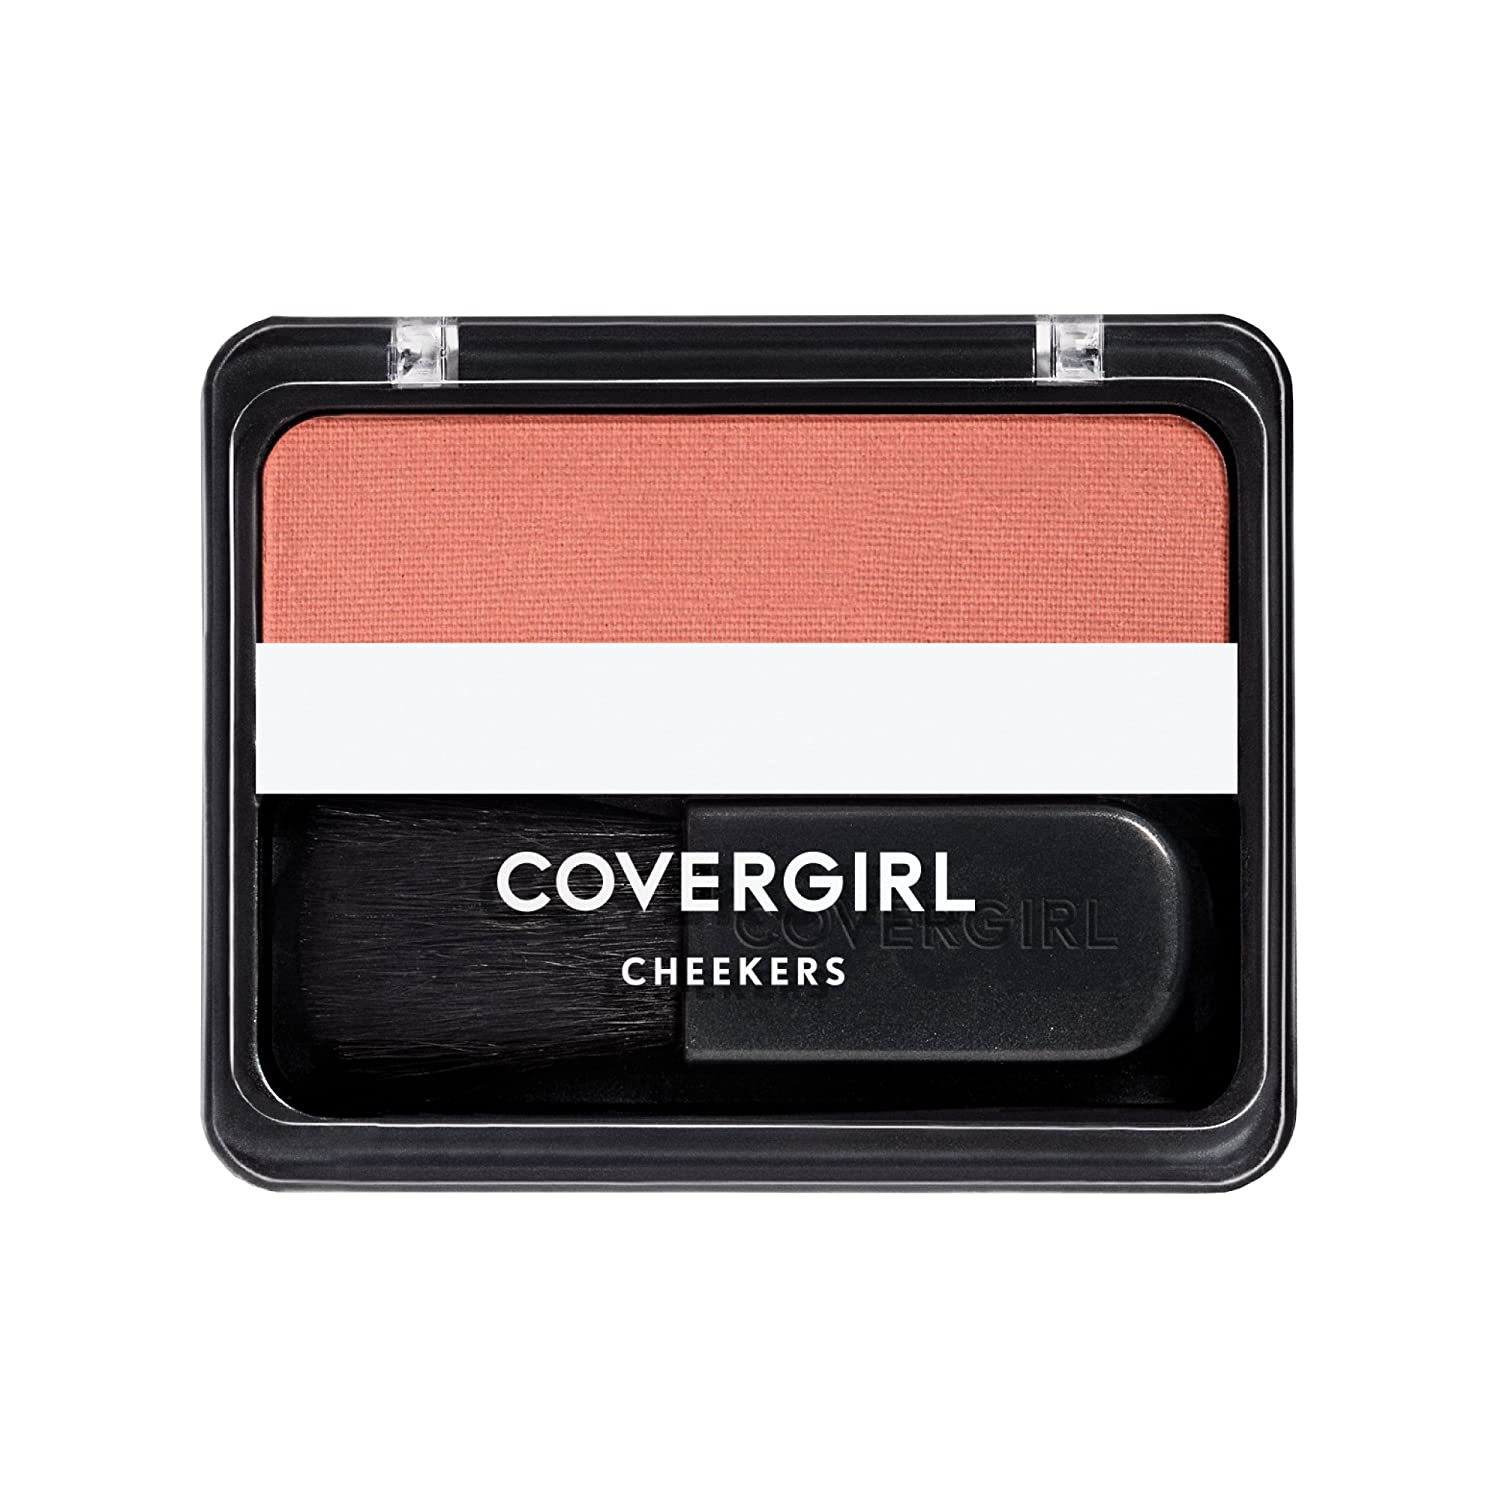 COVERGIRL Cheekers Blendable Powder Blush Iced Cappuccino, .12 oz (packaging may vary) COV-4428